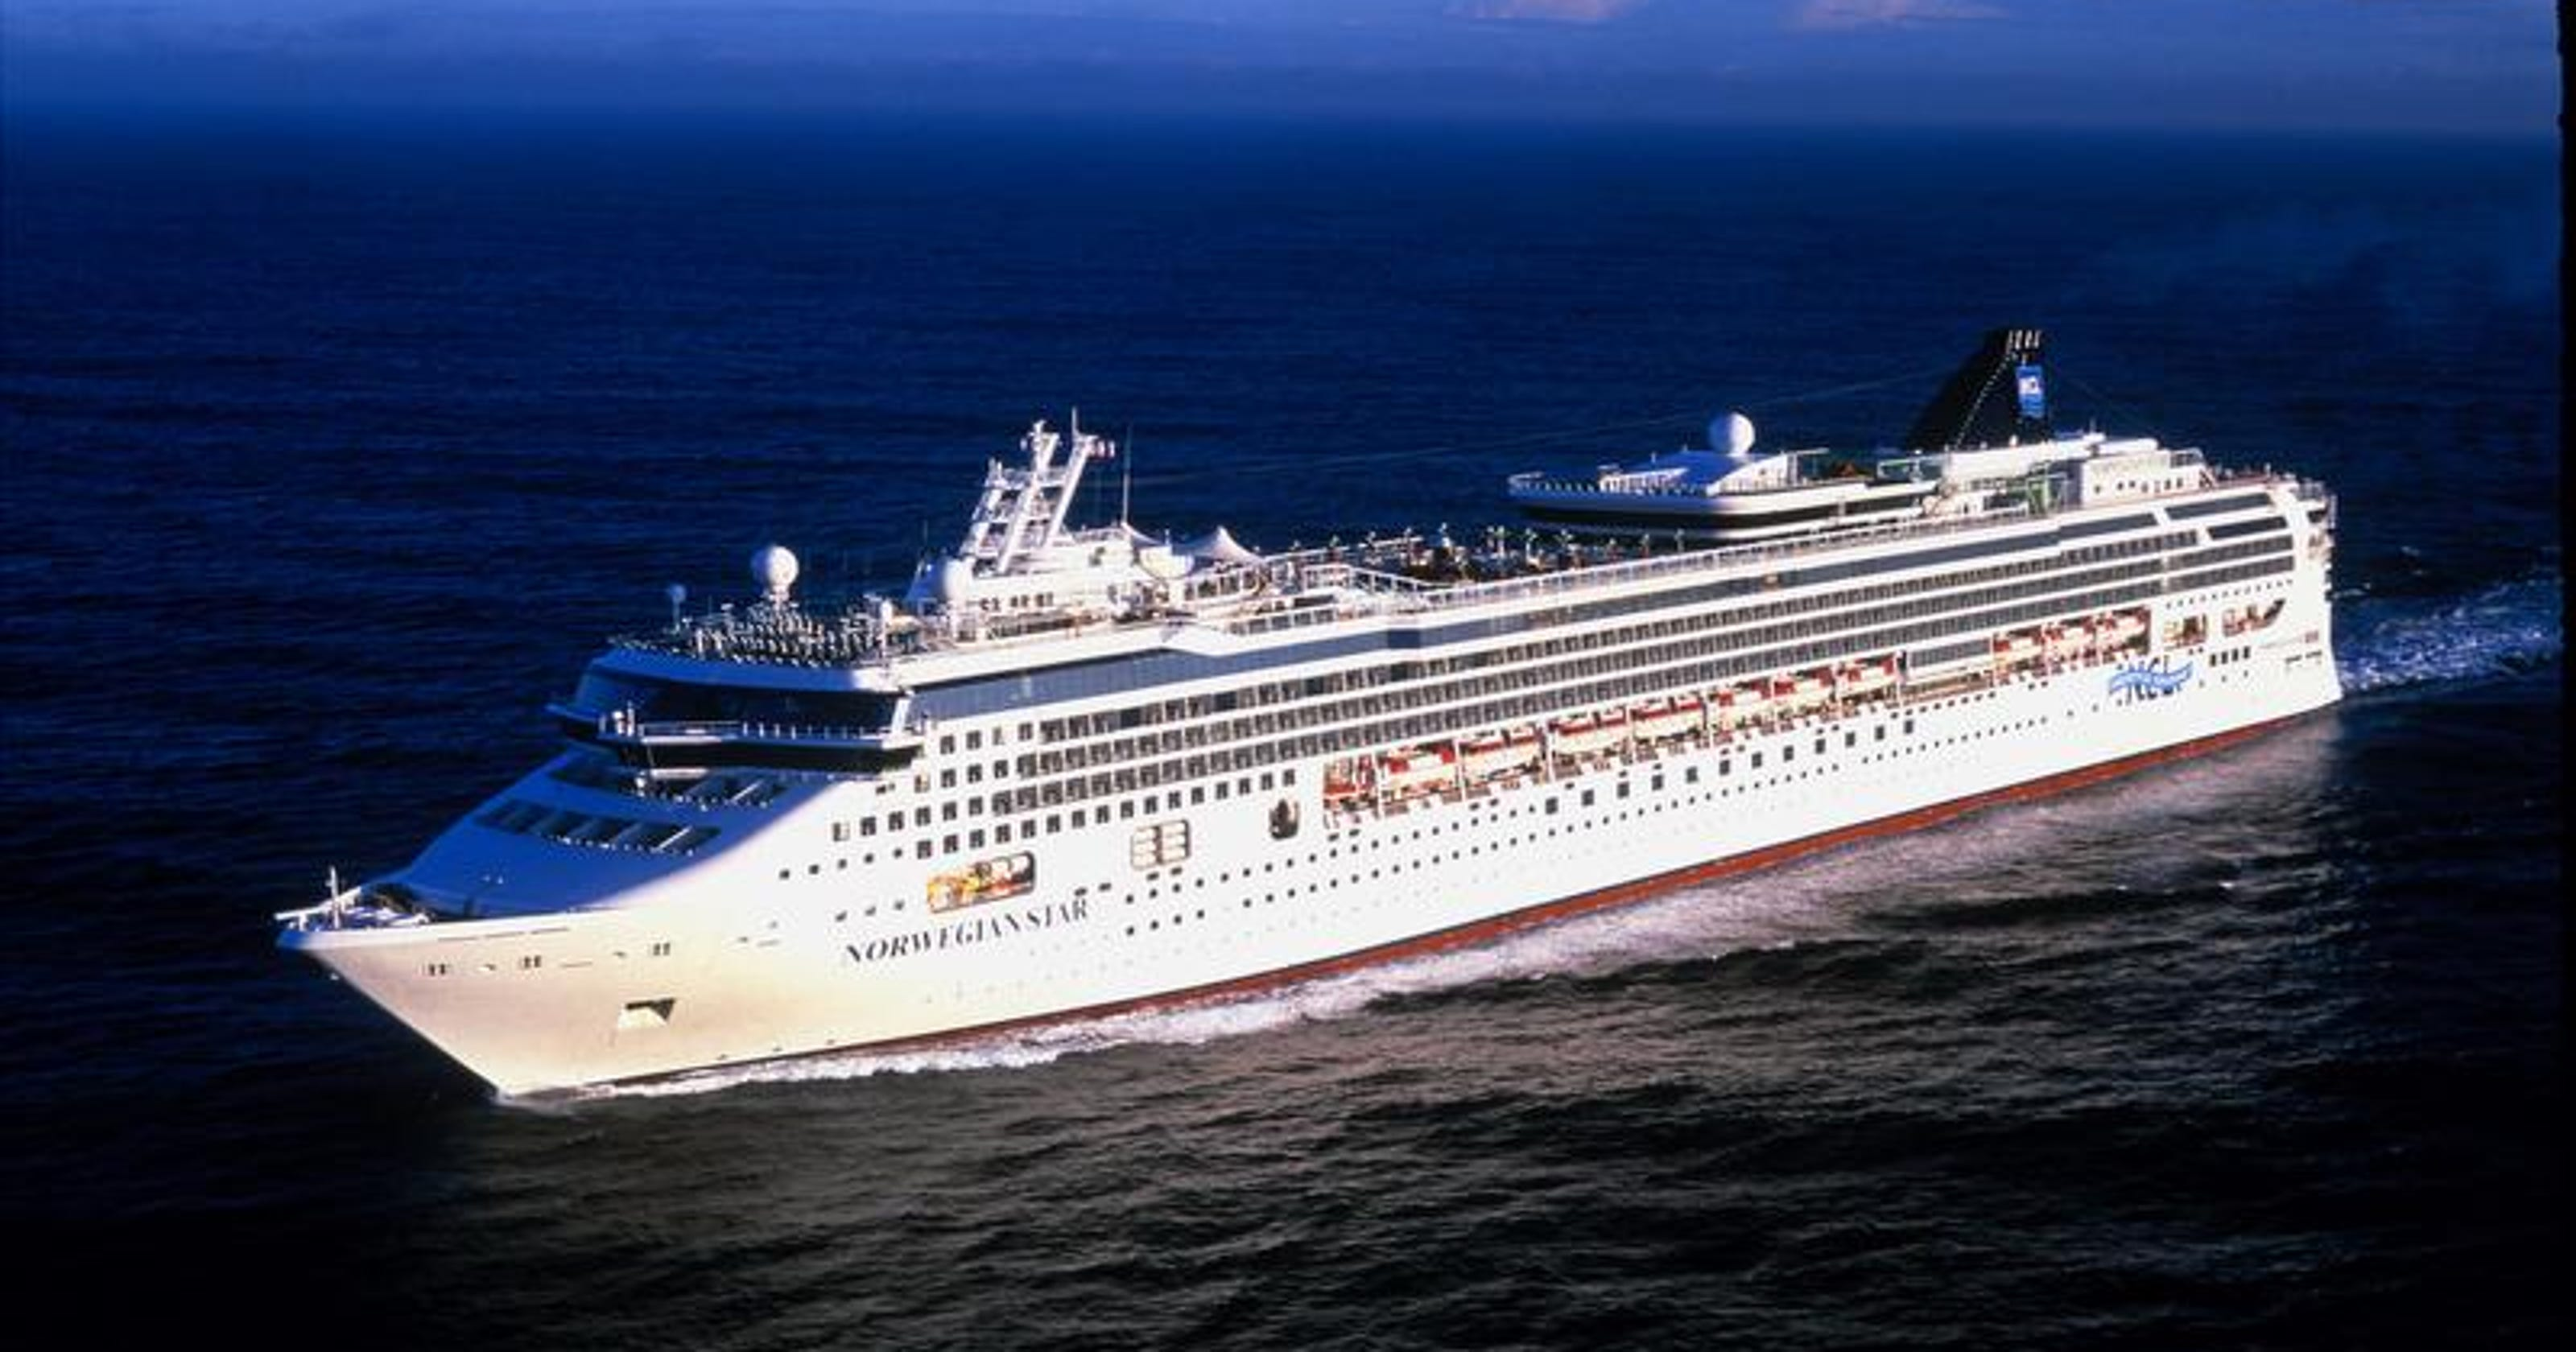 New cruise ship to be Super Bowl floating hotel